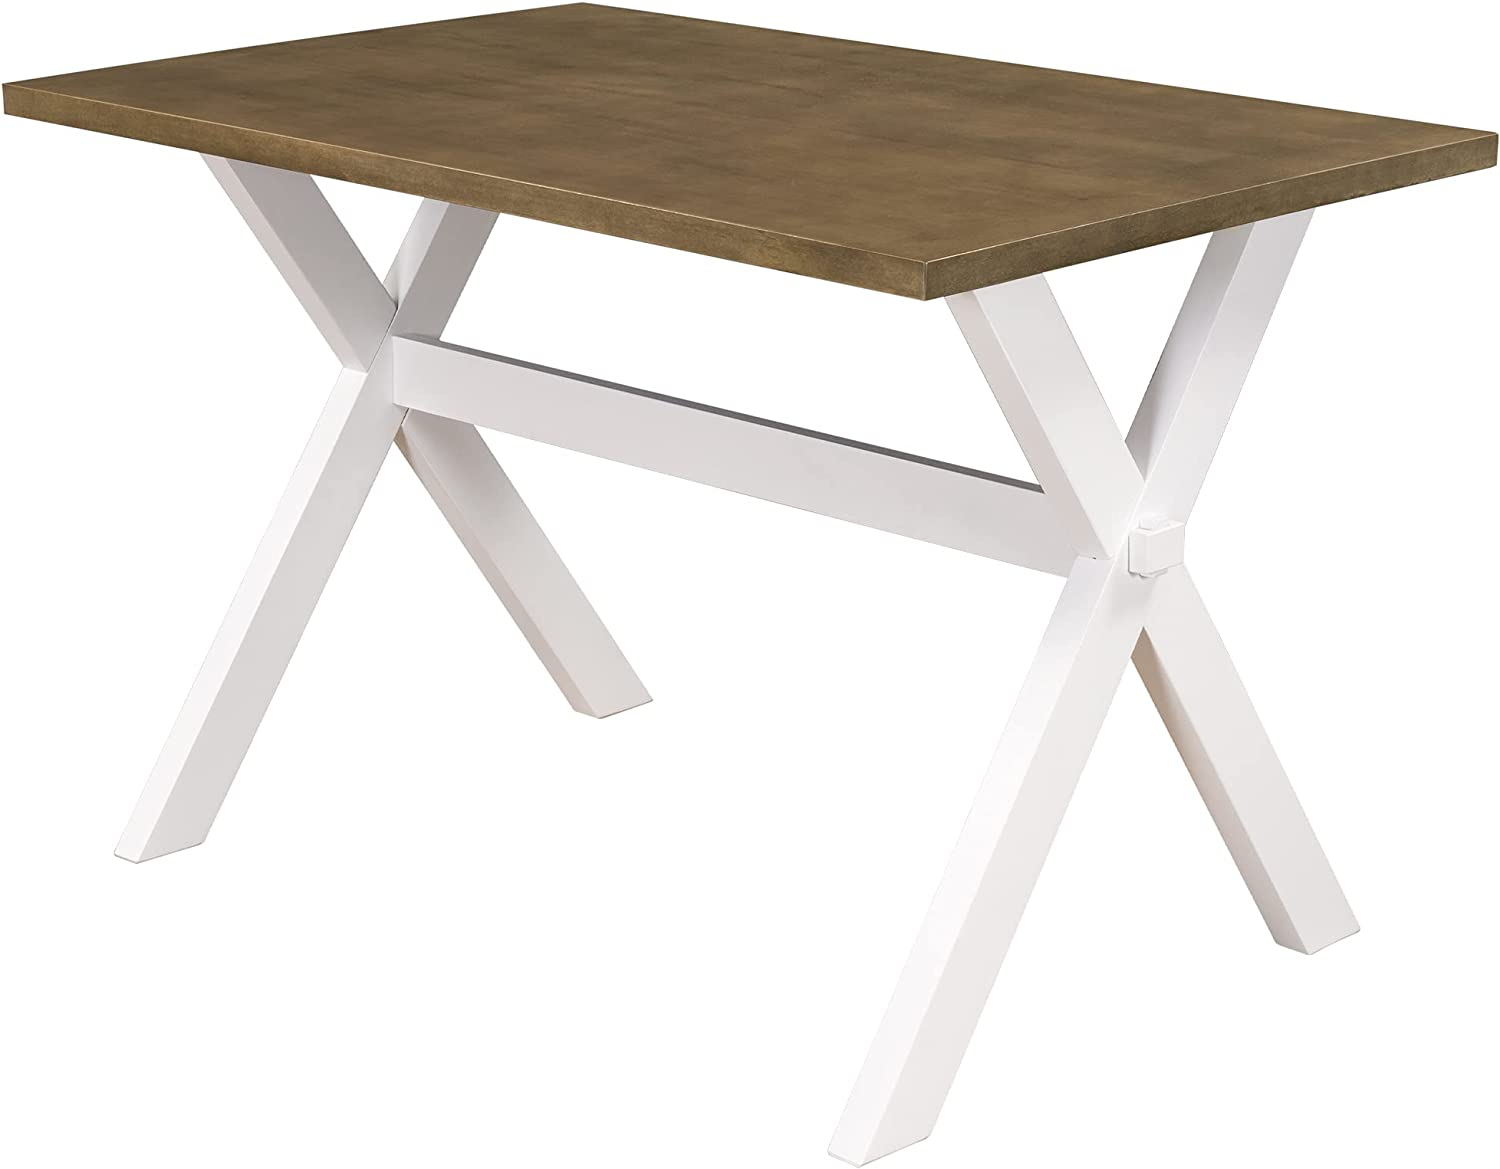 Dining Table with Ranking Max 78% OFF TOP12 X-Shape Legs Brown White